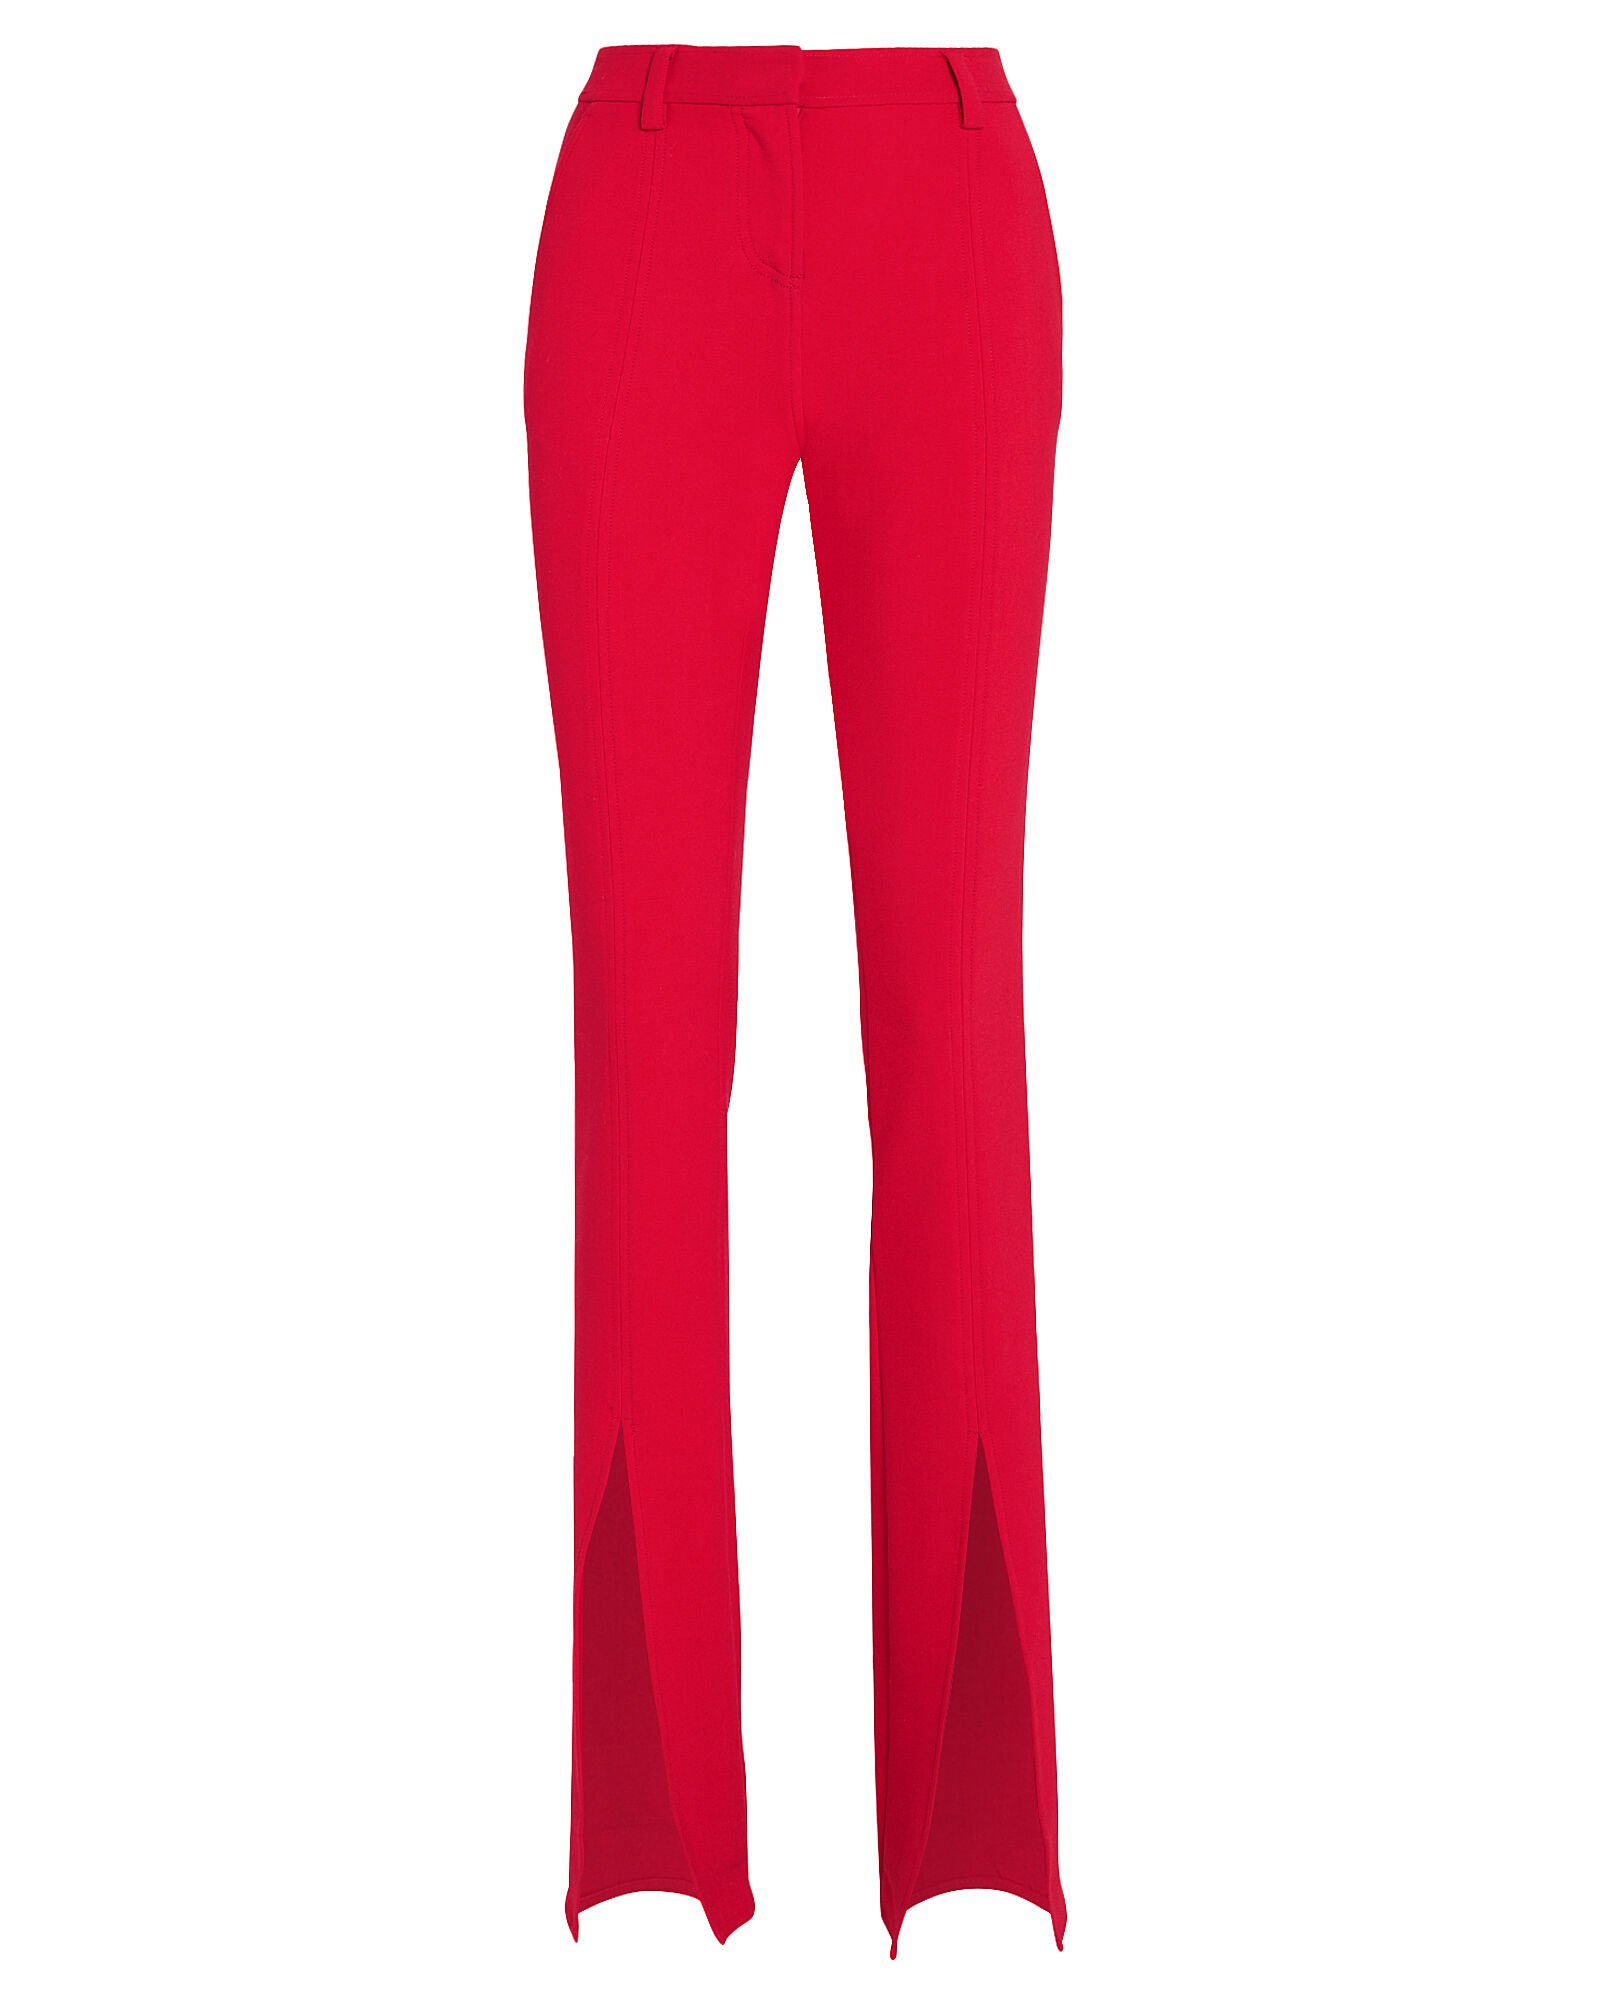 Conway Slim Stretch Trousers, RED, hi-res